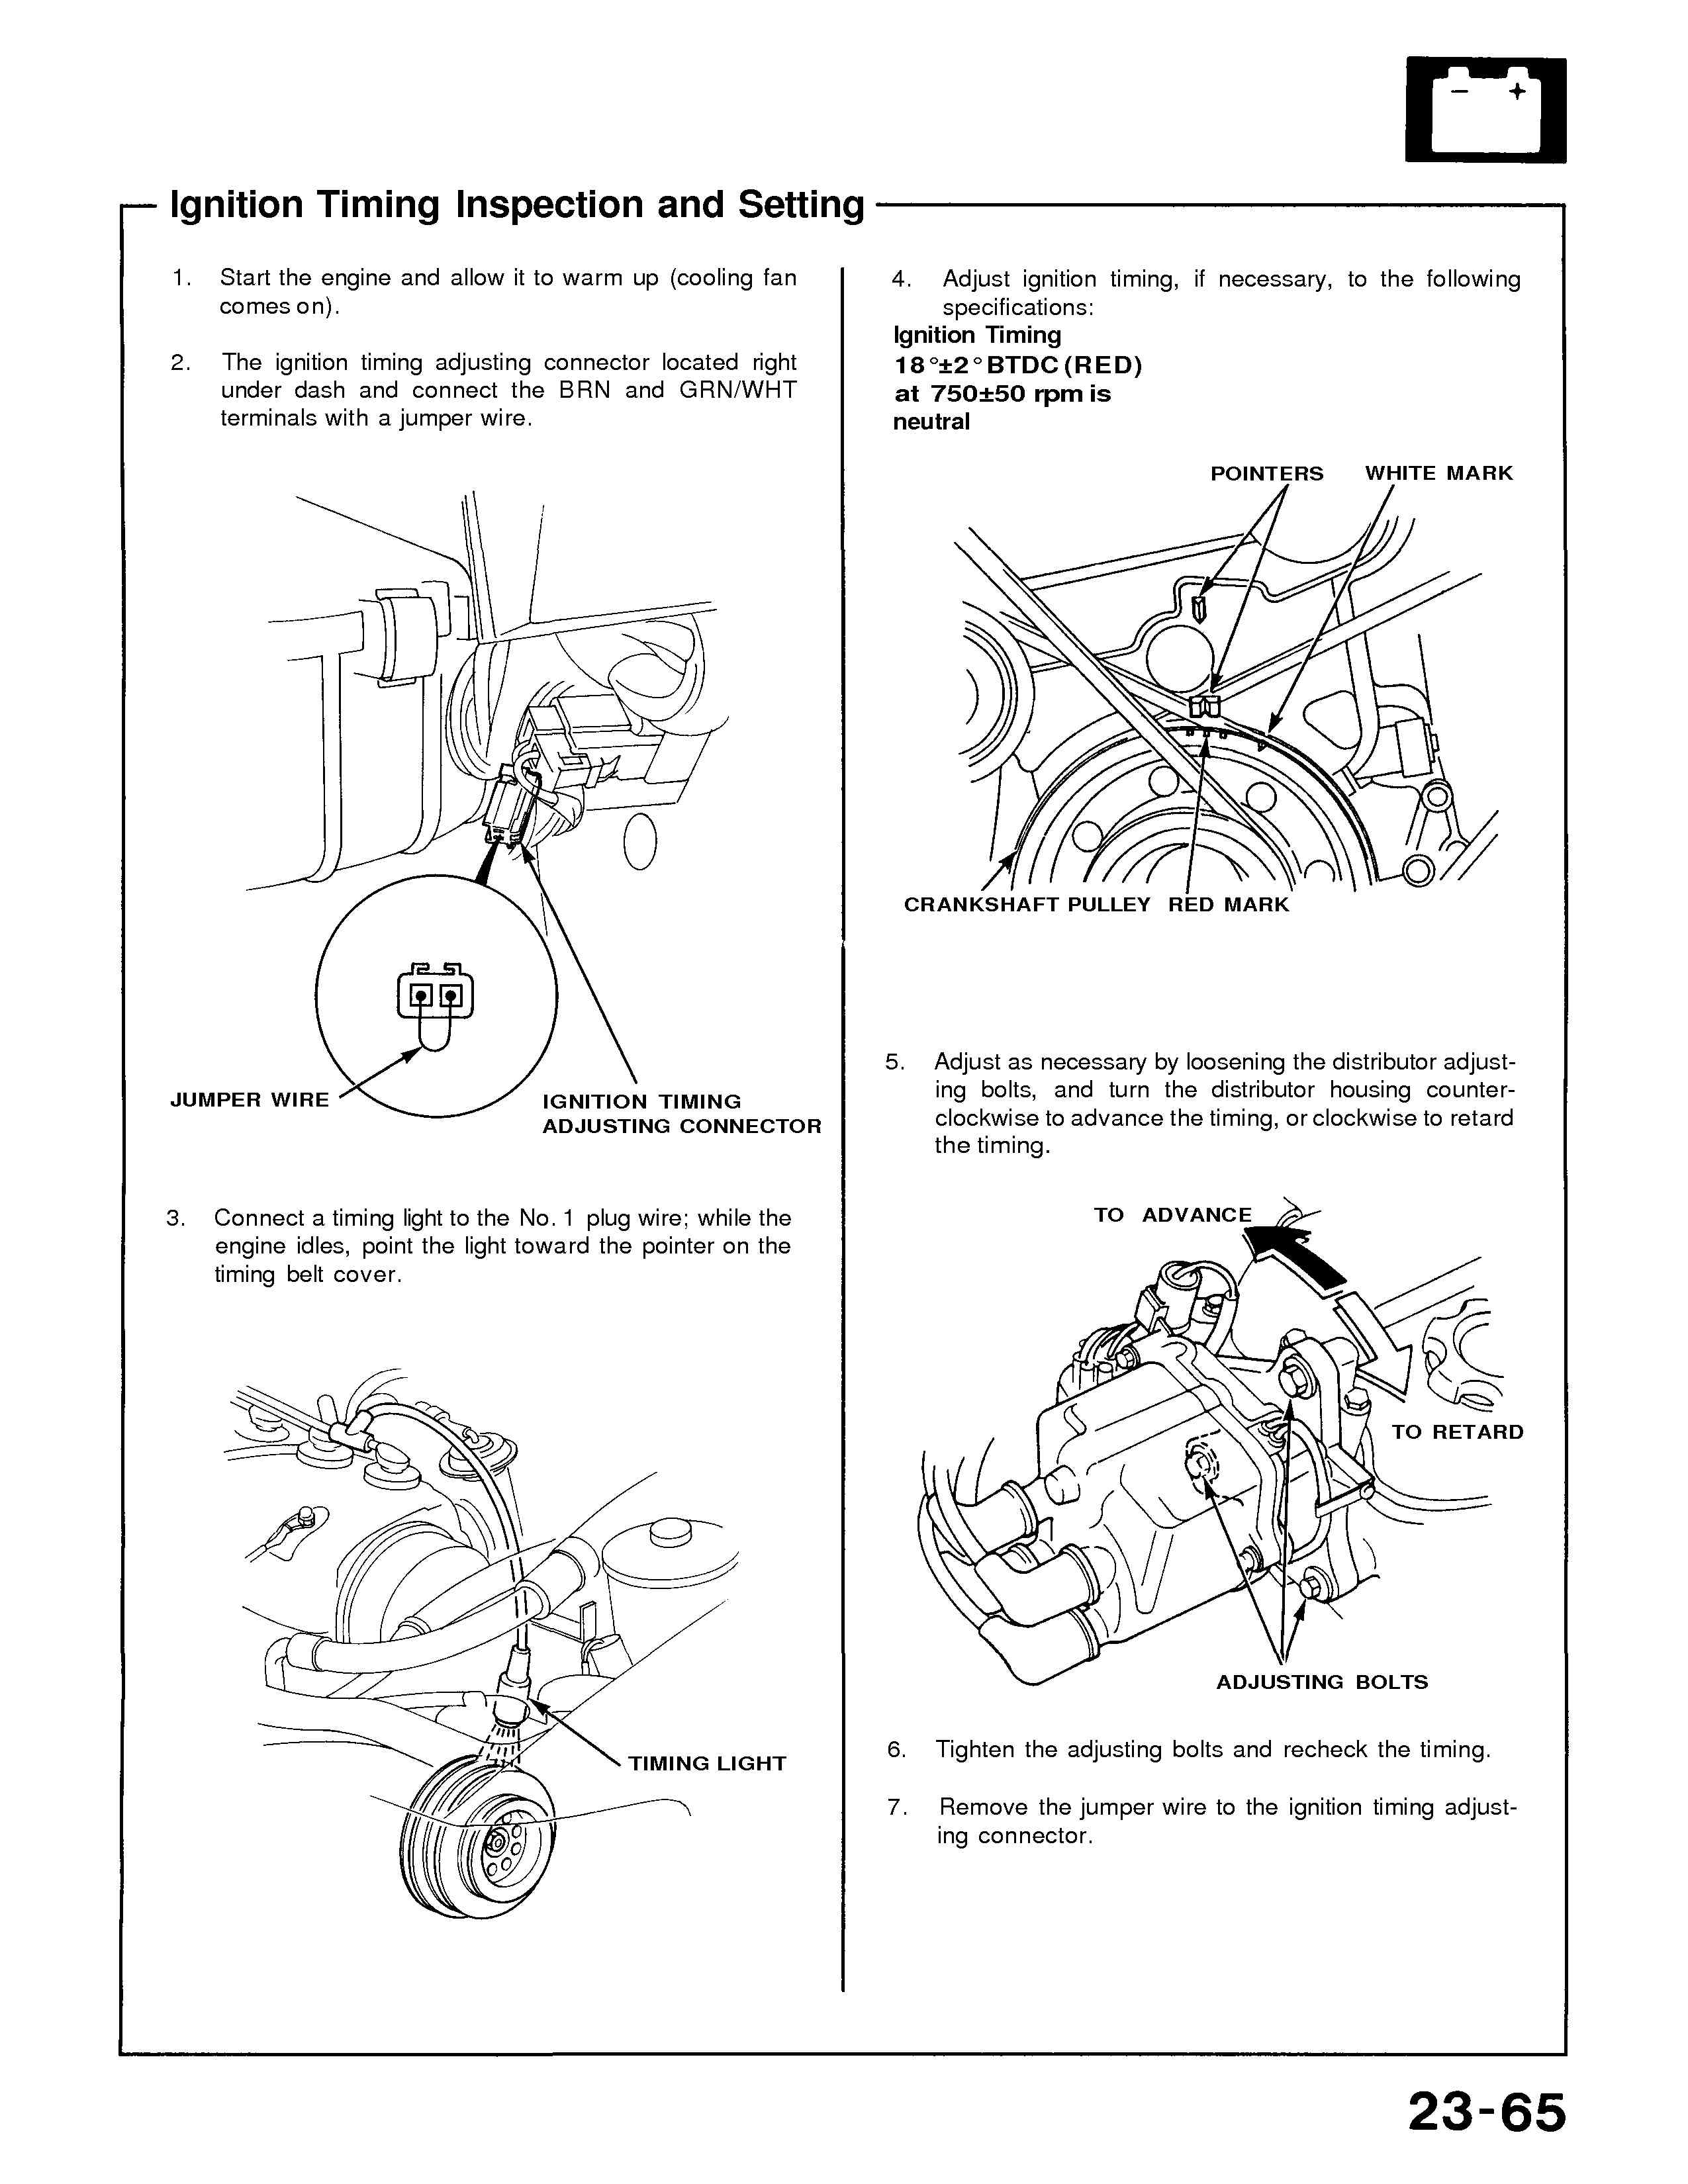 1990 Honda Civic Was Running Fine While Driving It Quit Triedd To Crx Timing Belt Engine Mechanical Problem Graphic